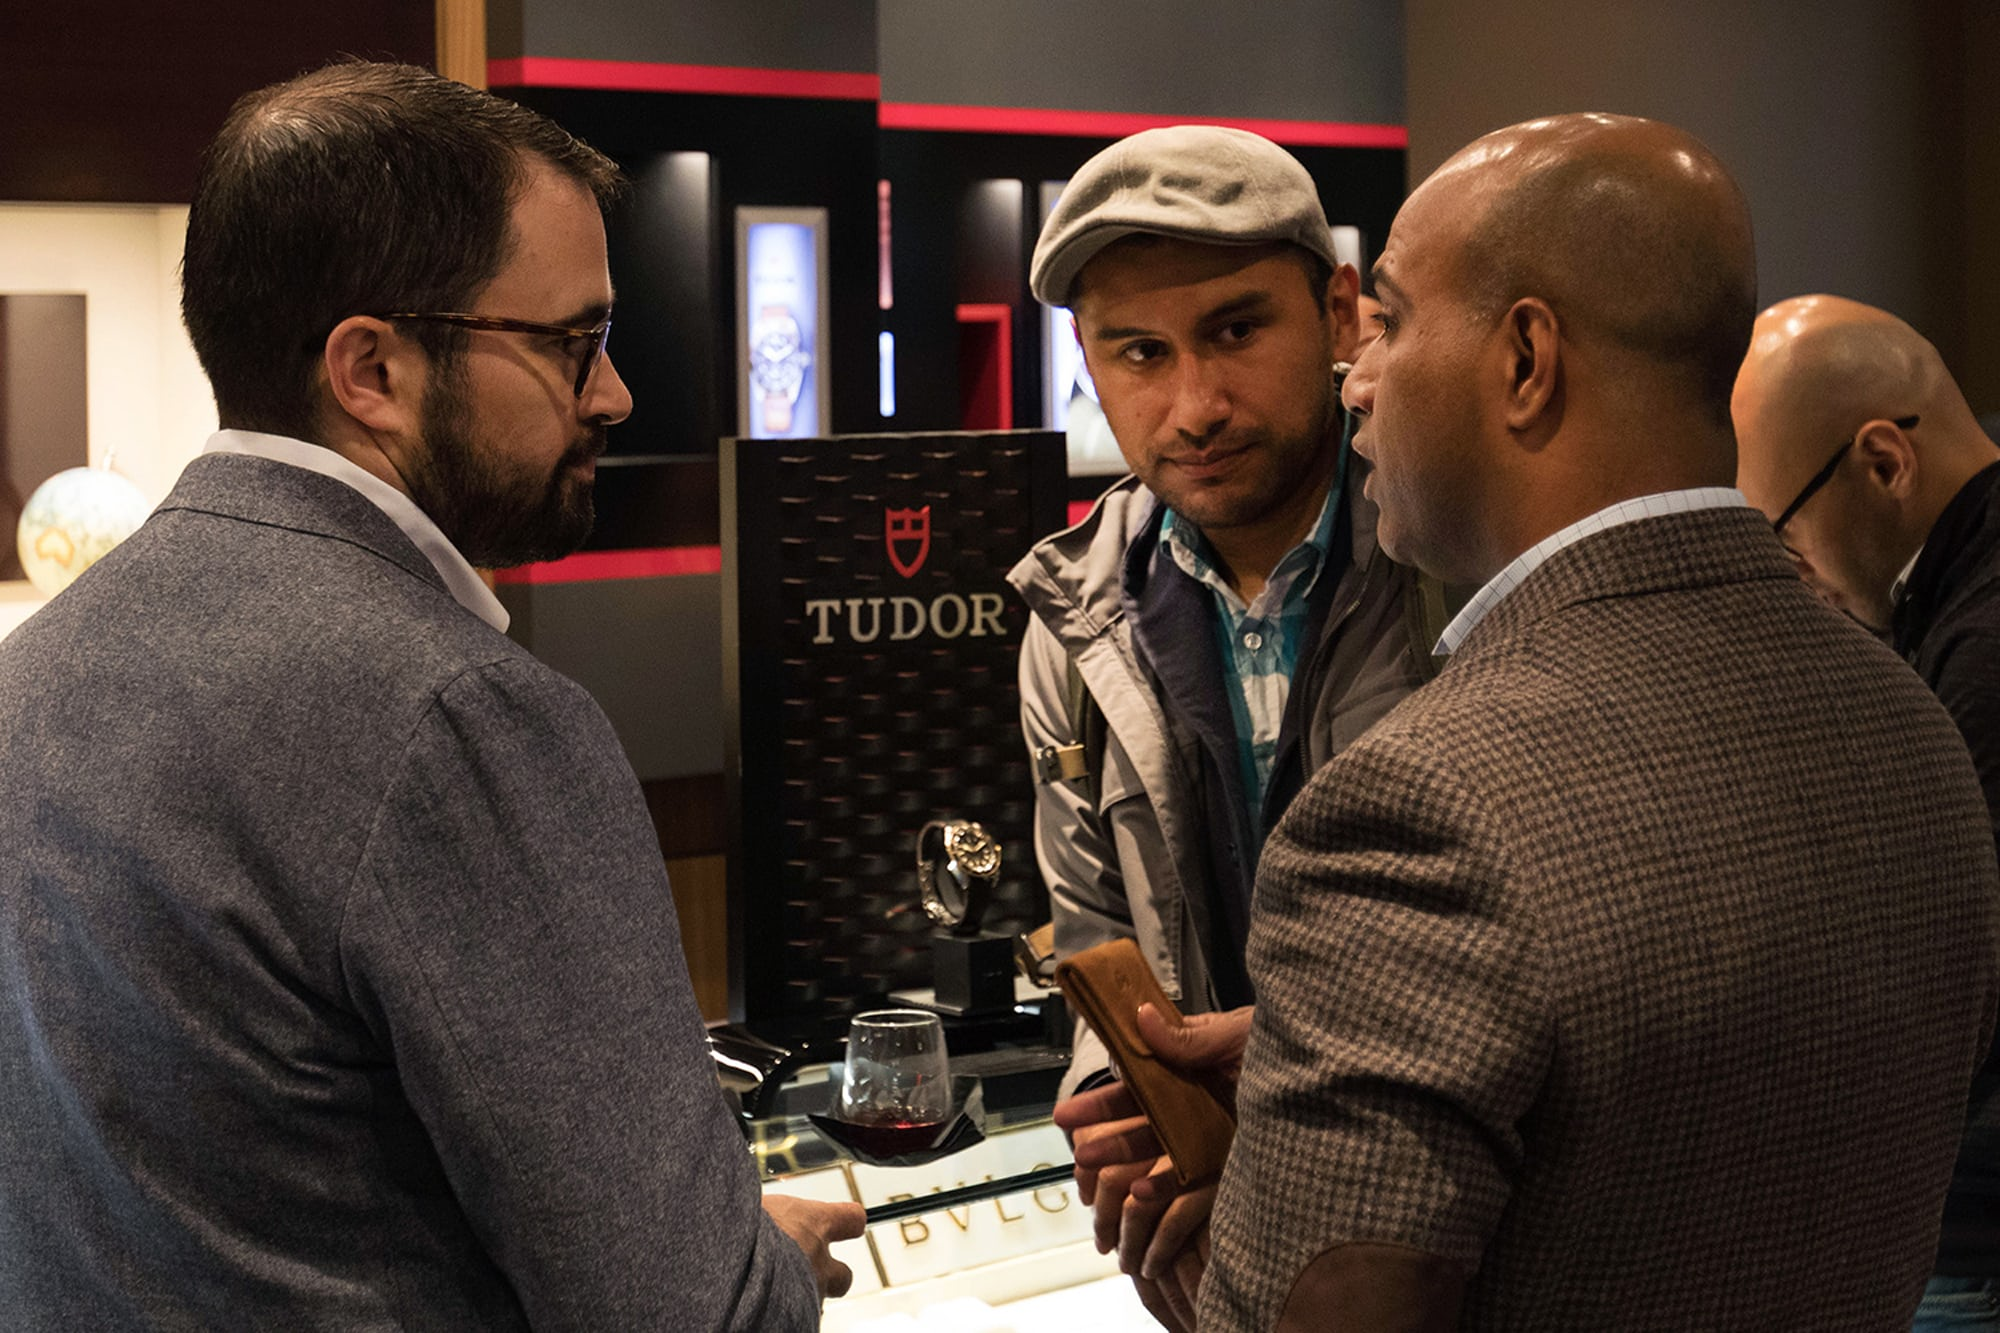 Photo Report: The Tudor Baselworld Novelties At Swiss Fine Timing In Chicago Photo Report: The Tudor Baselworld Novelties At Swiss Fine Timing In Chicago  ust People Observing only 2